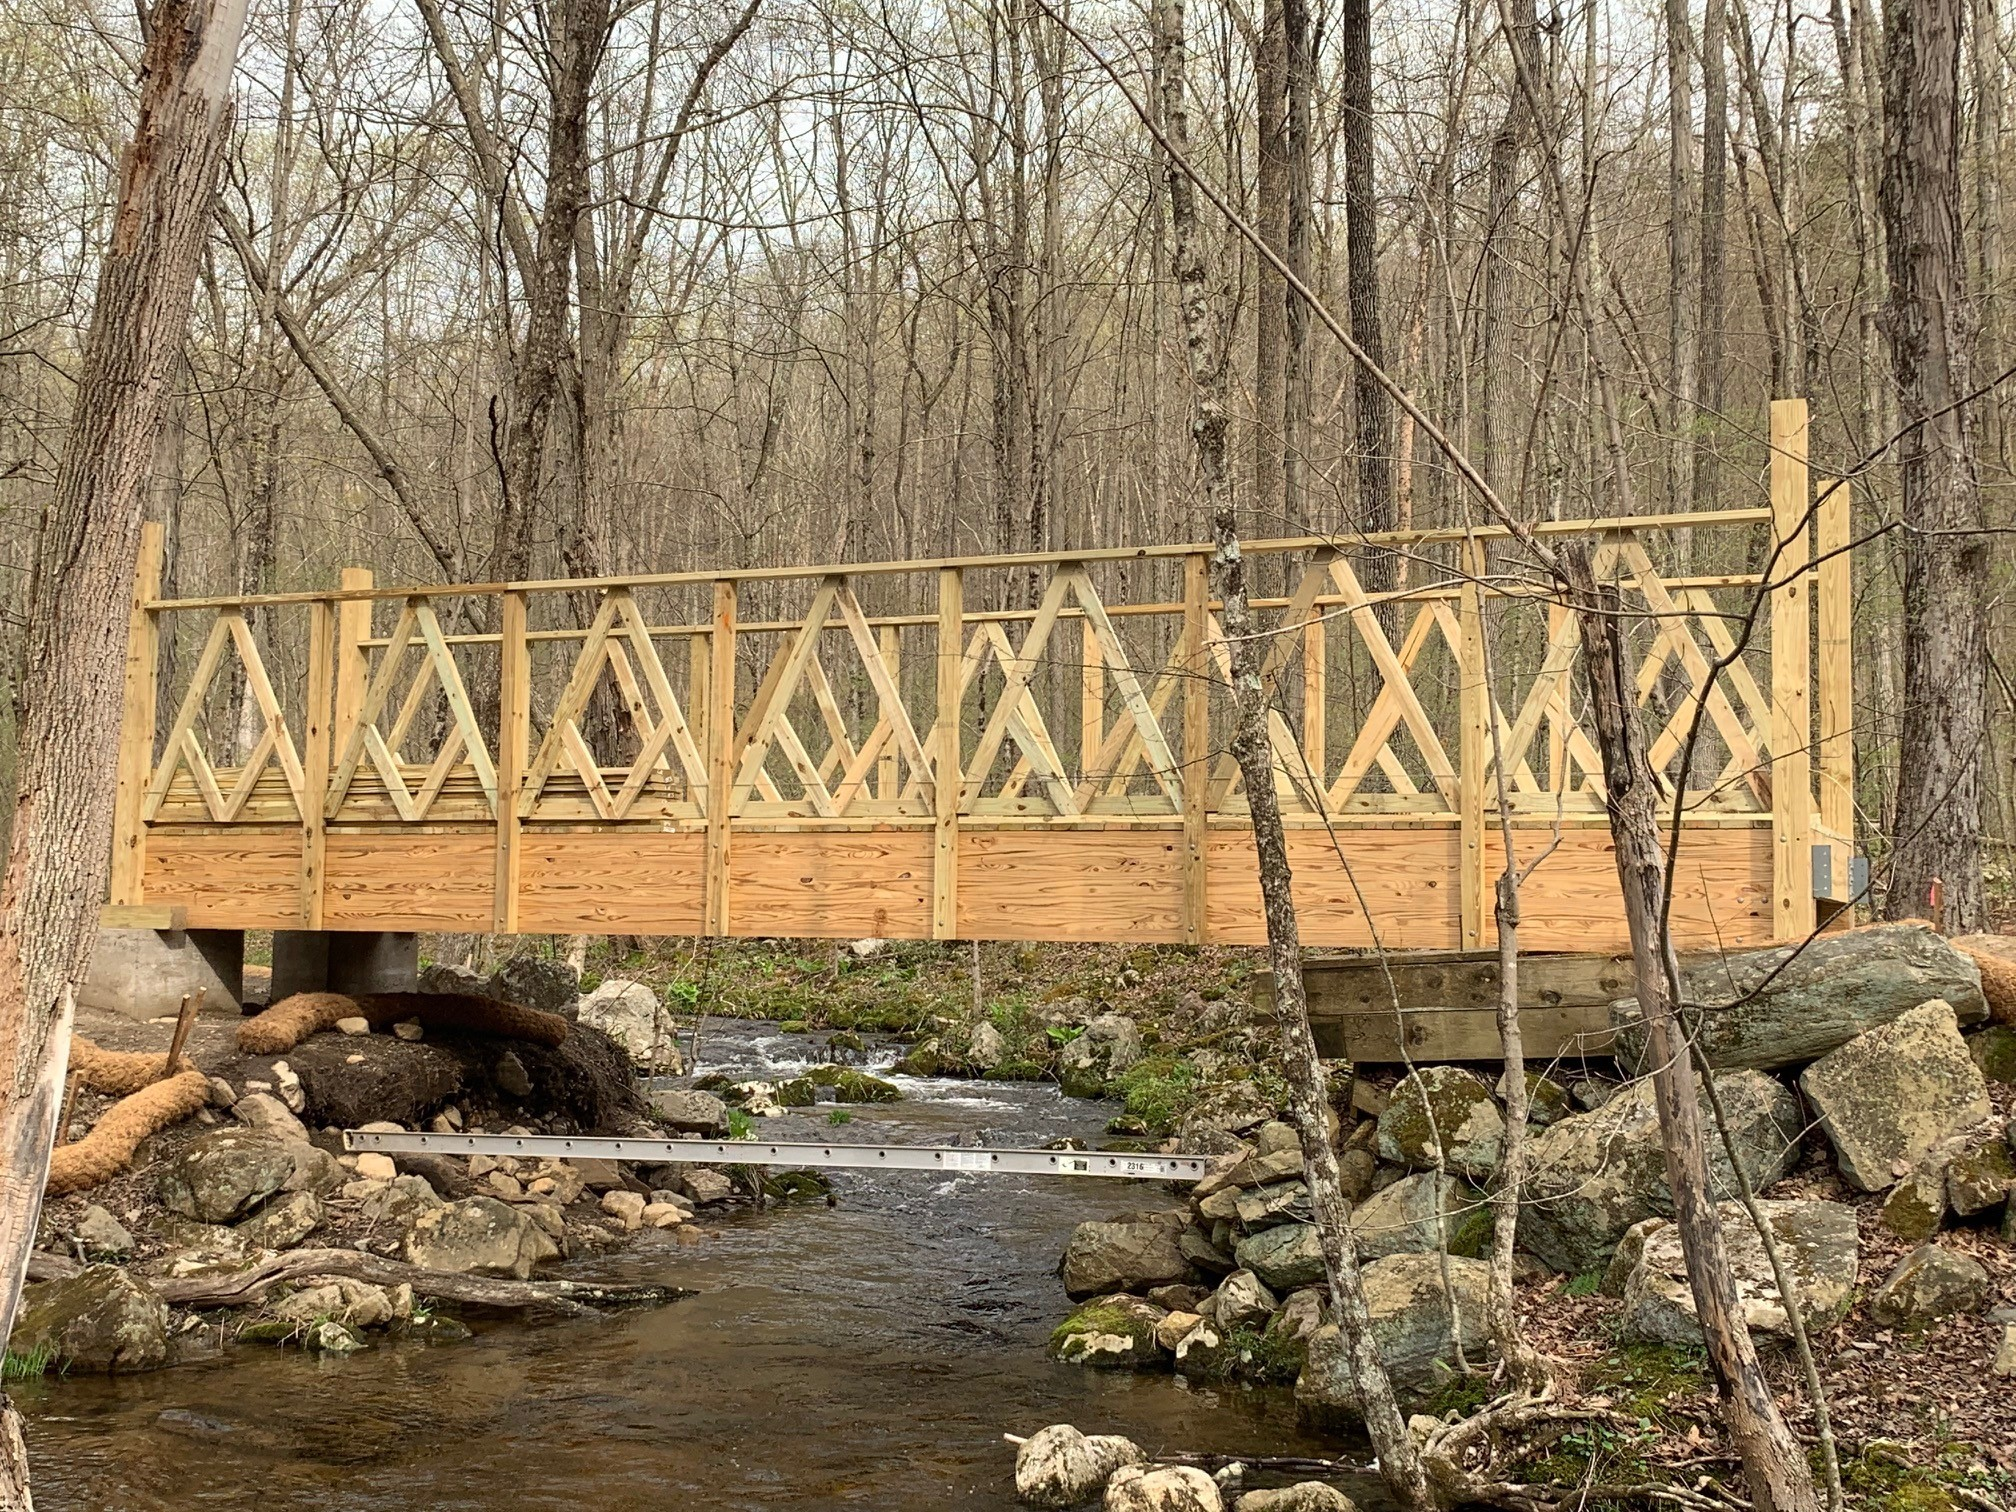 The bridge constructed by the West Point cadets.